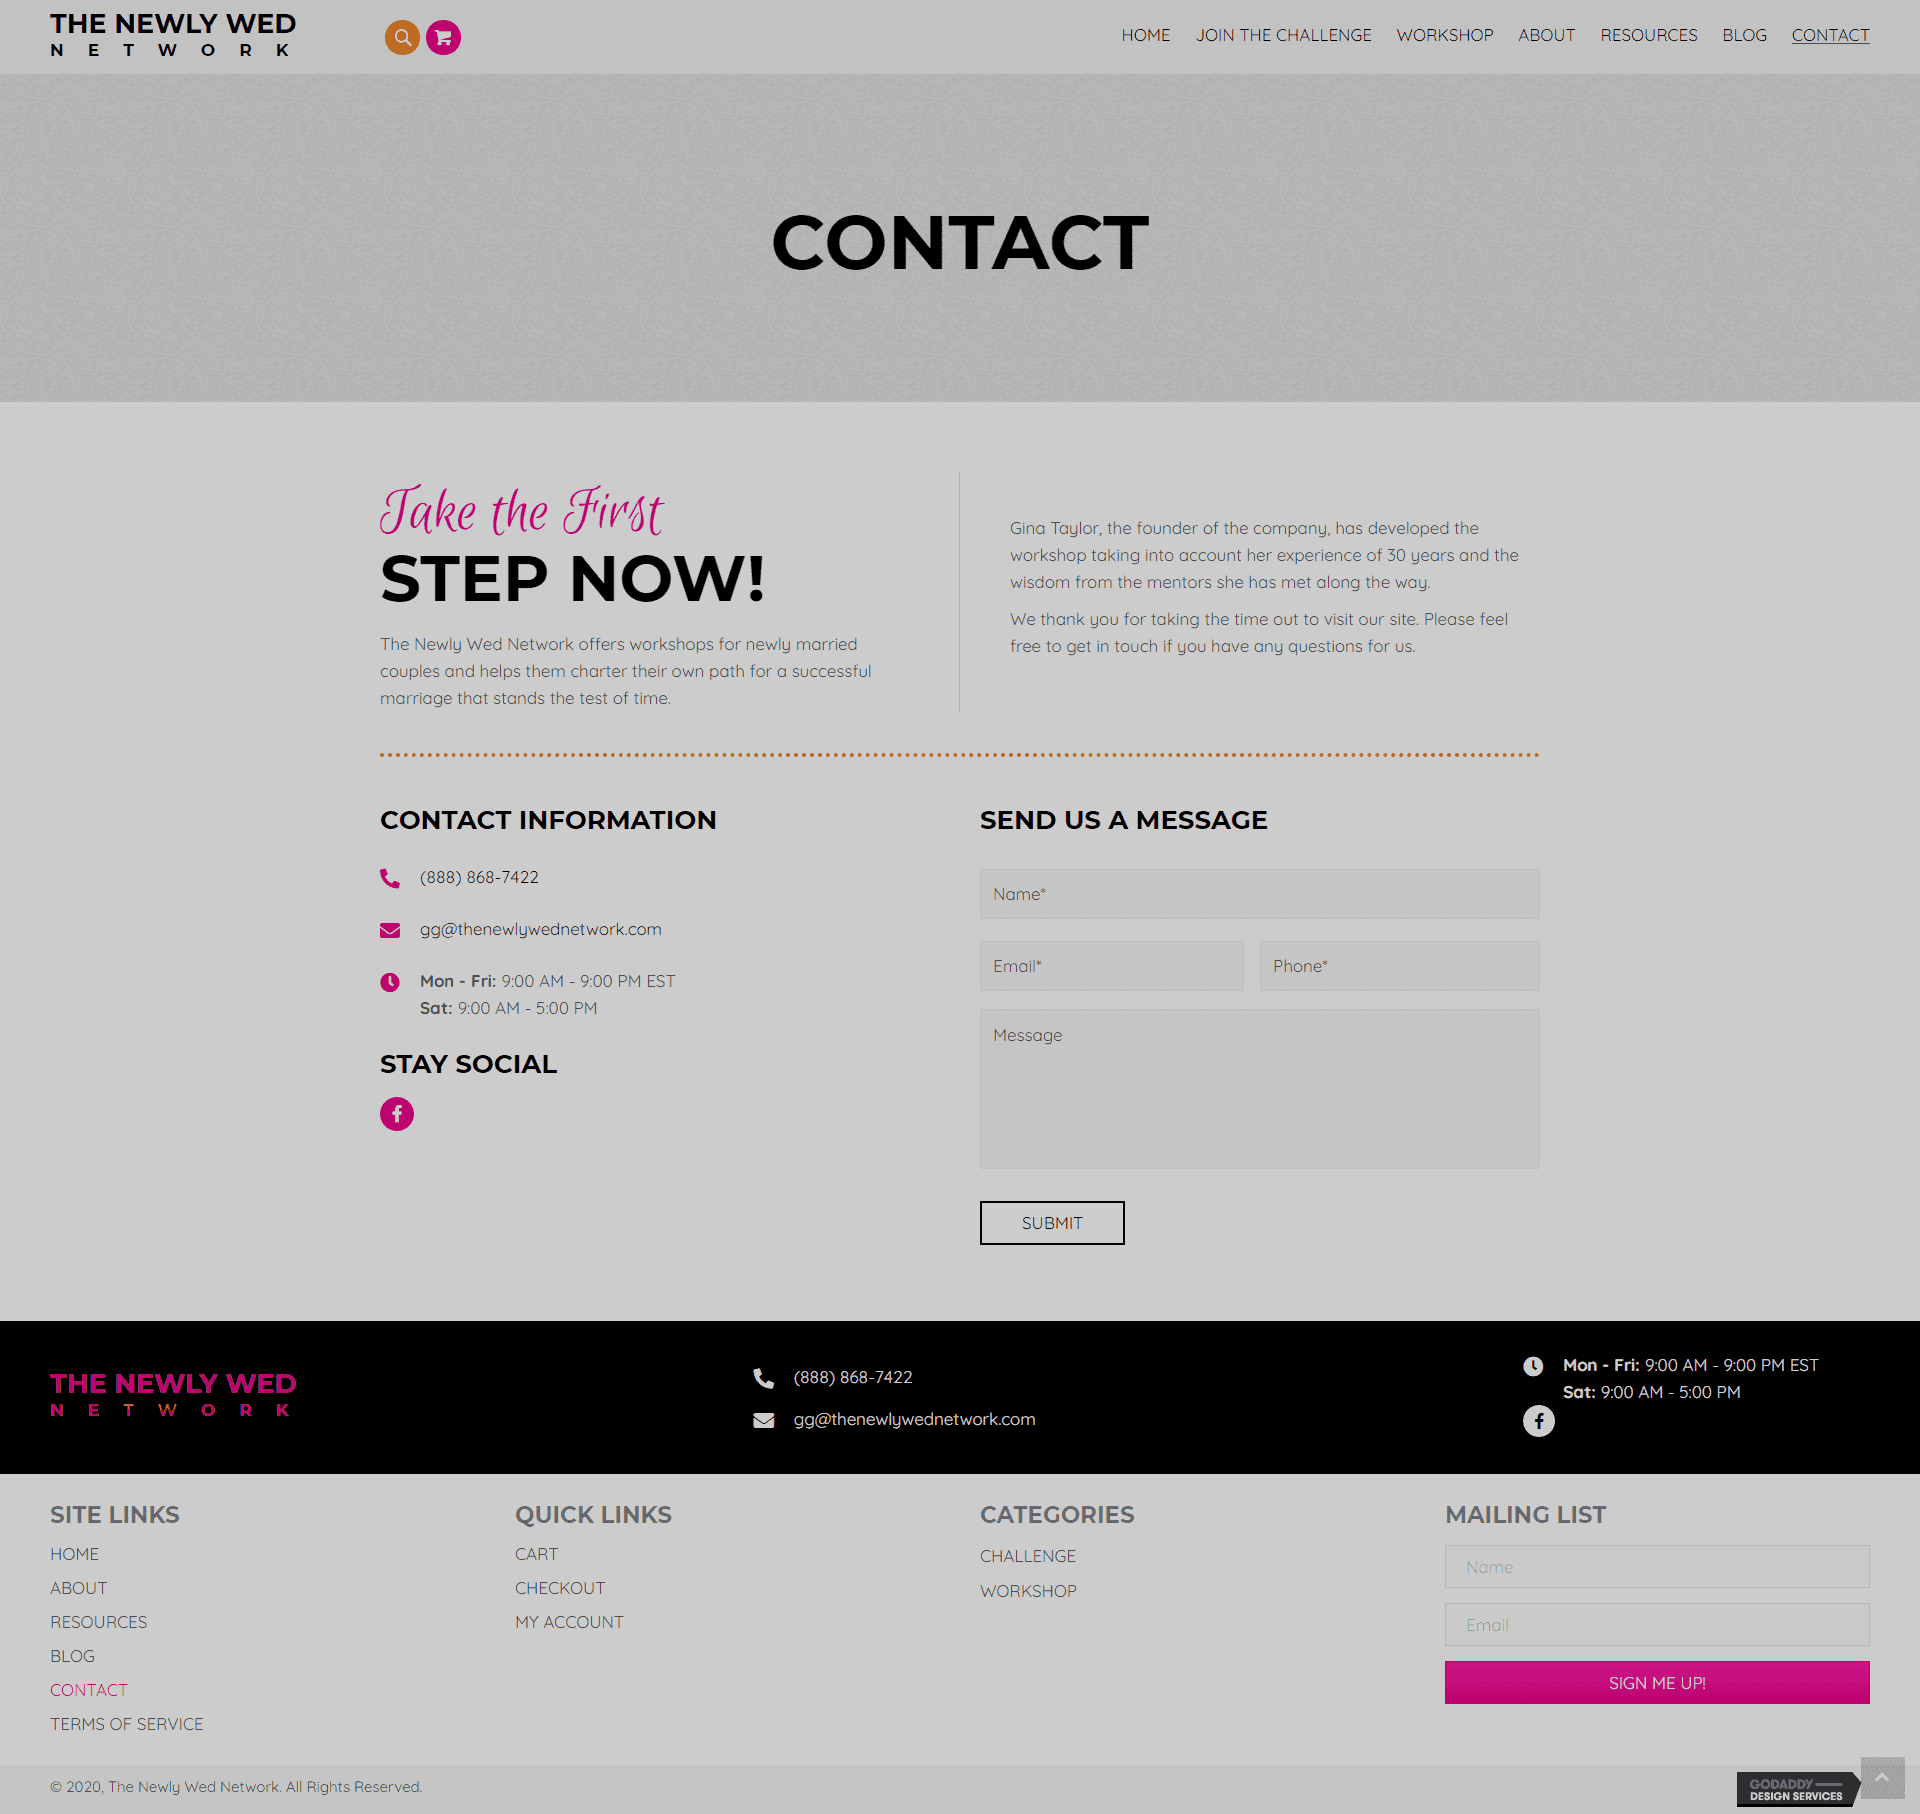 The Newly Wed Network Contact Page